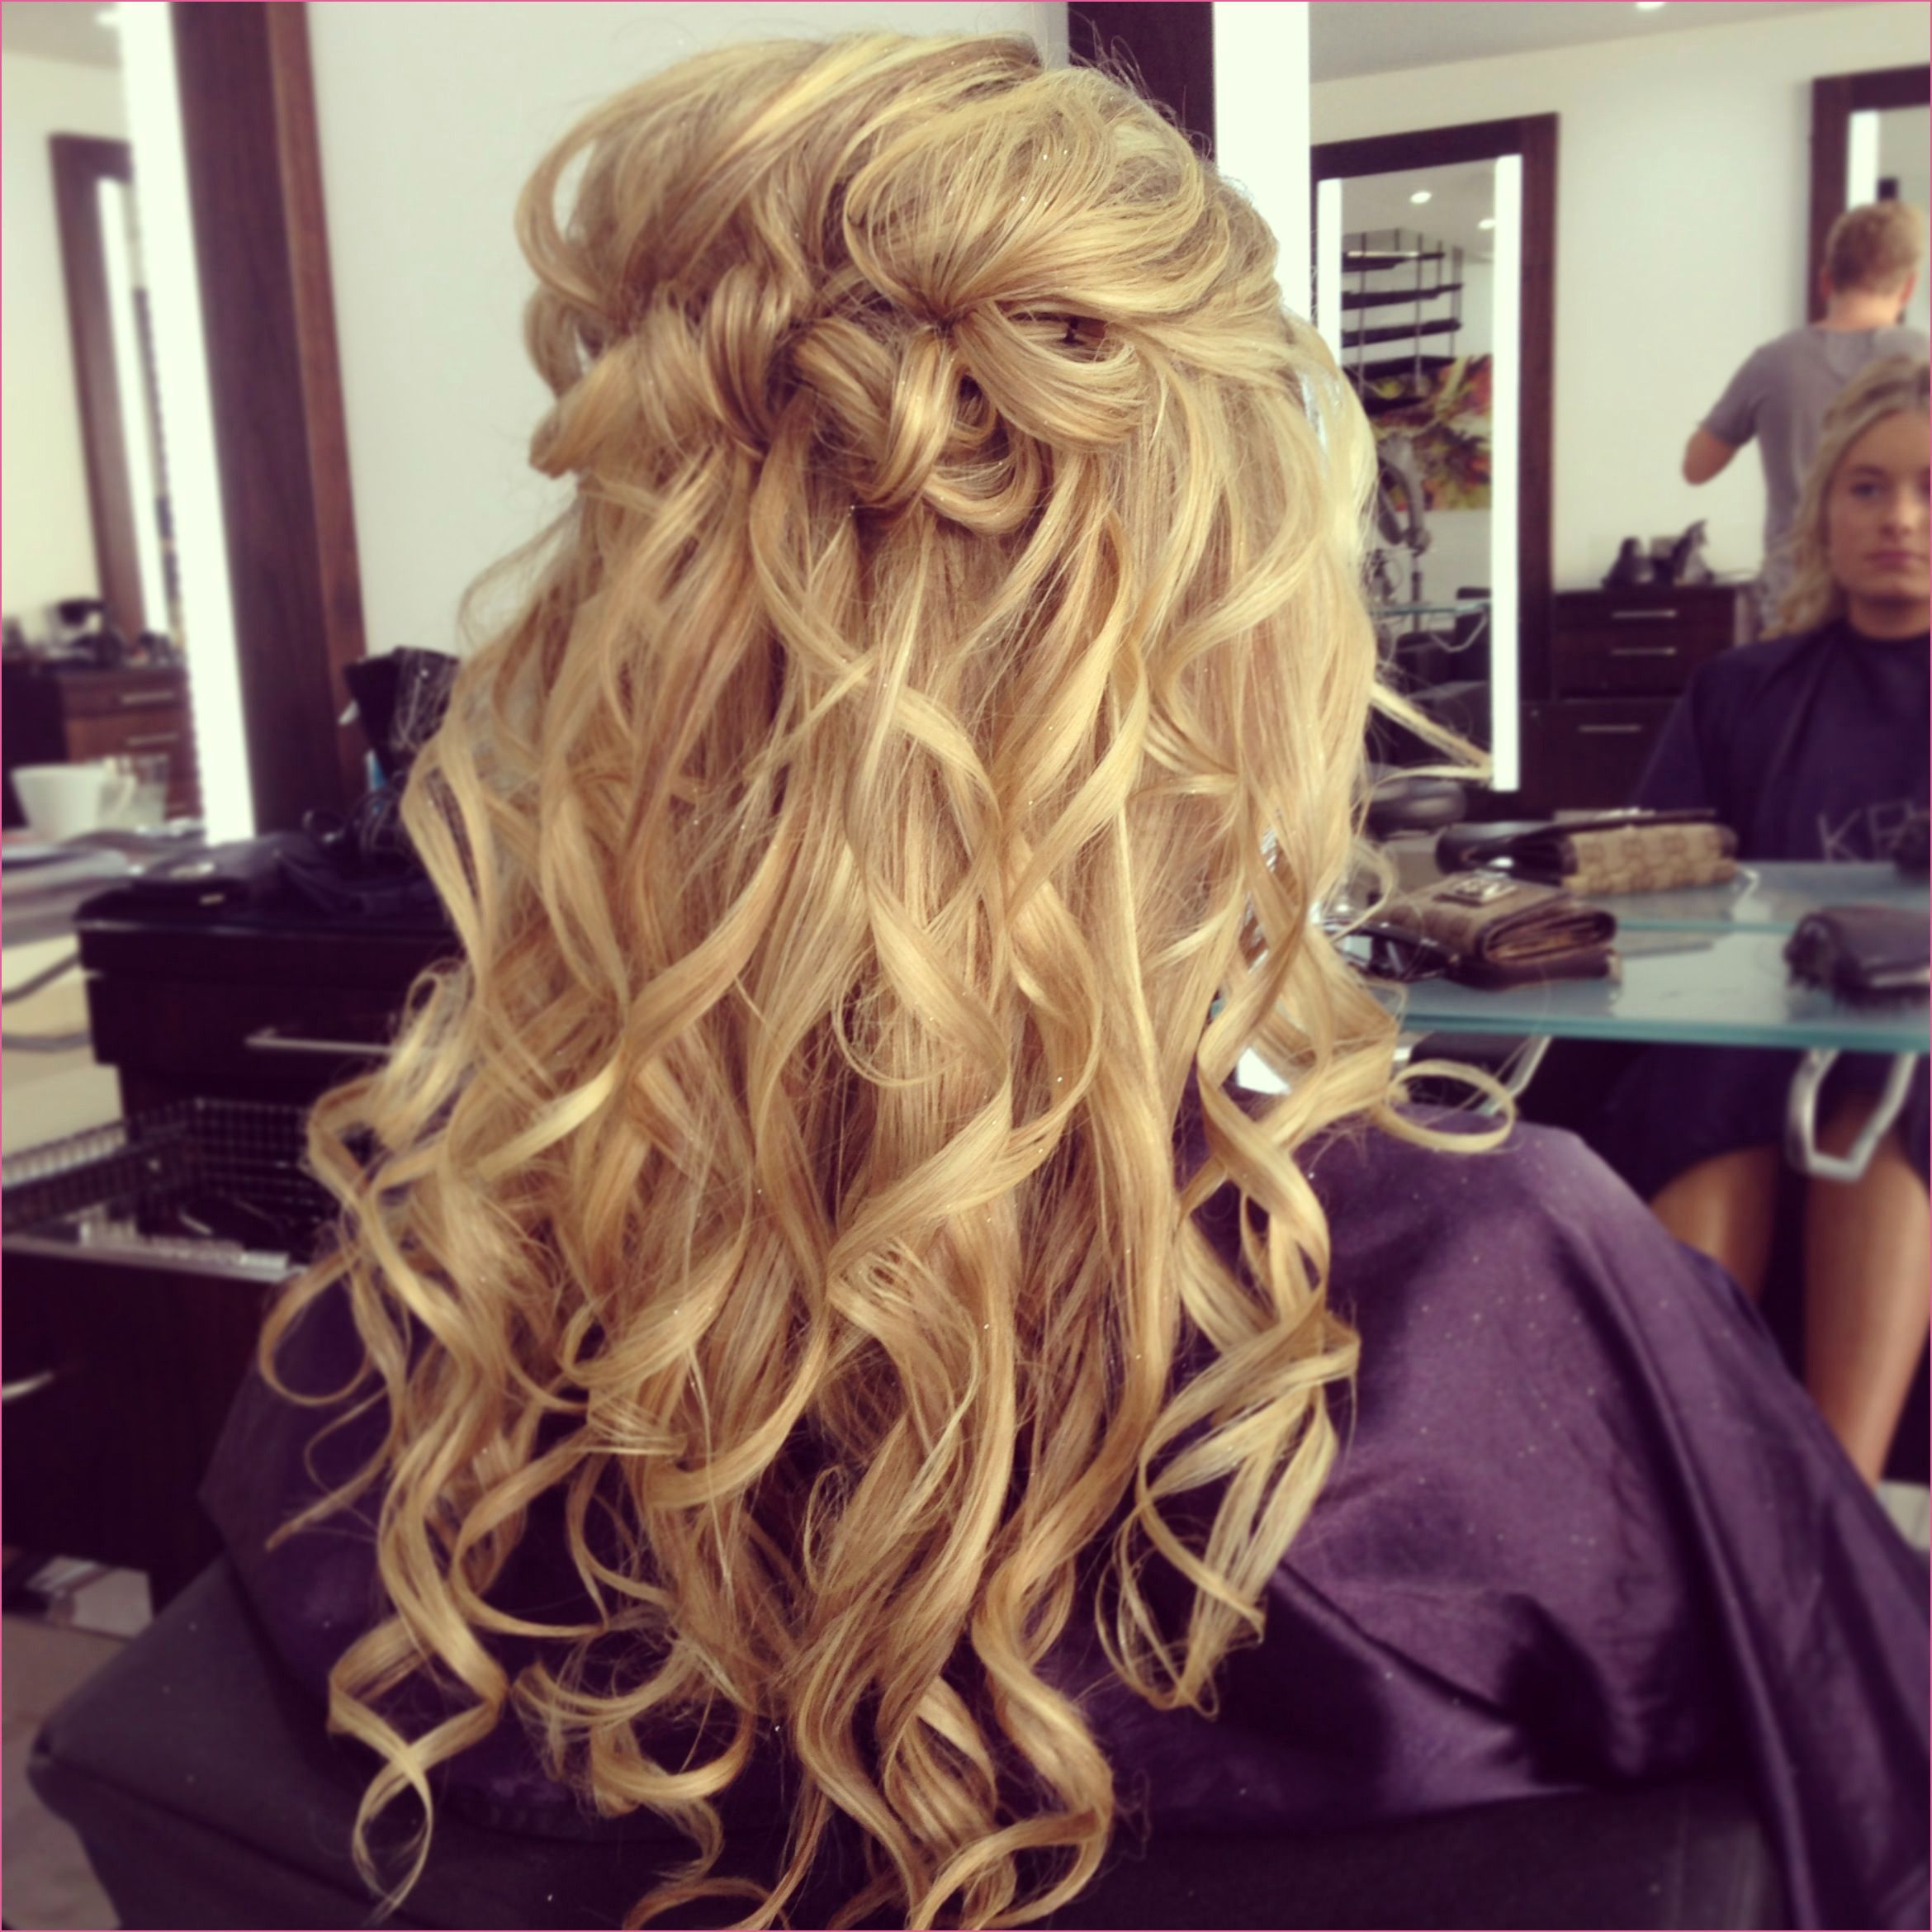 Party Frisuren Locken - Party Frisuren Locken party frisuren